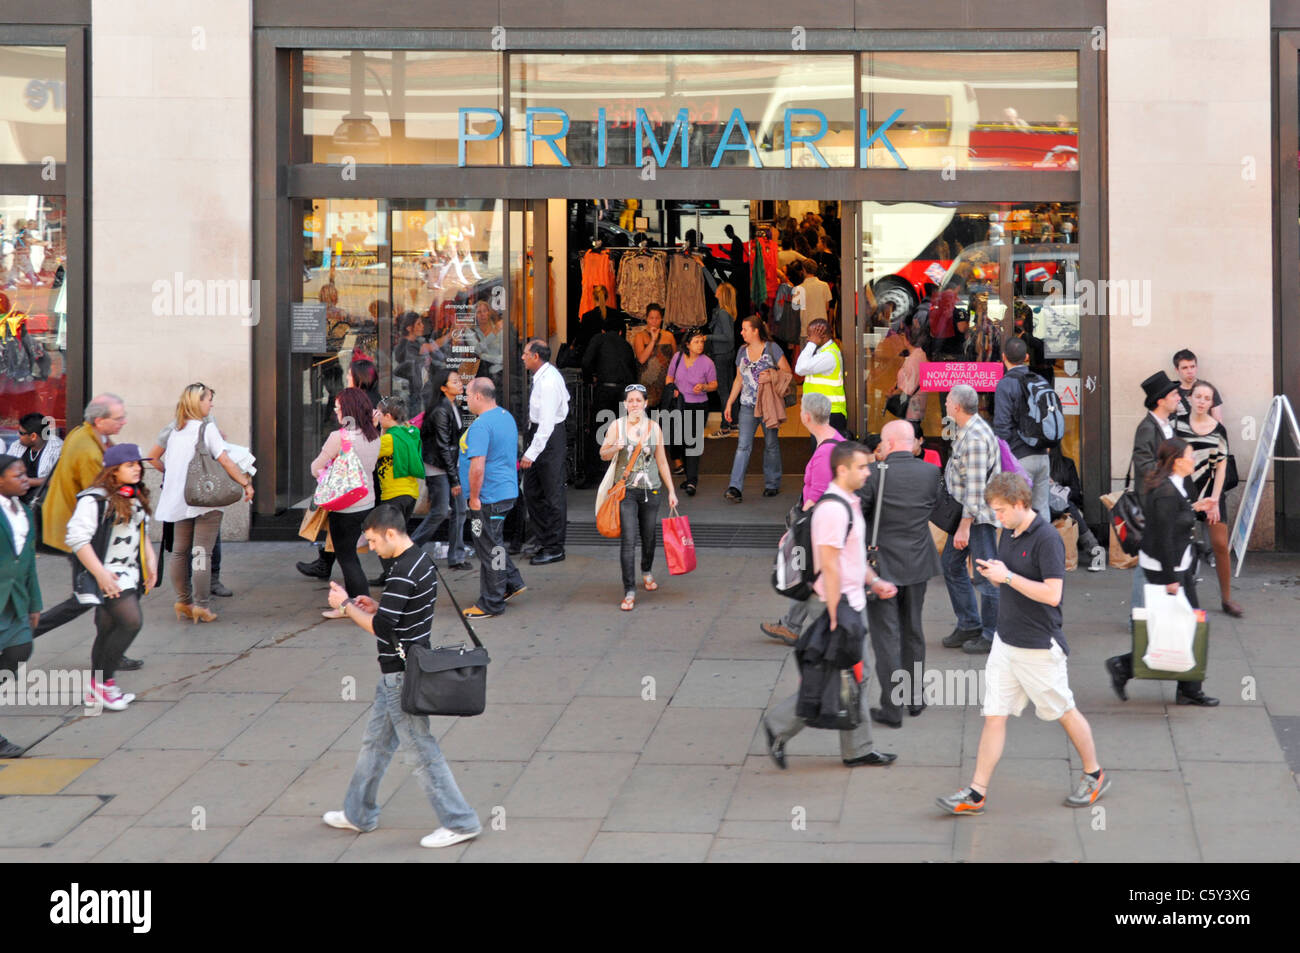 London street scene view from above looking down at shoppers in & around Primark clothing retail shopping store - Stock Image